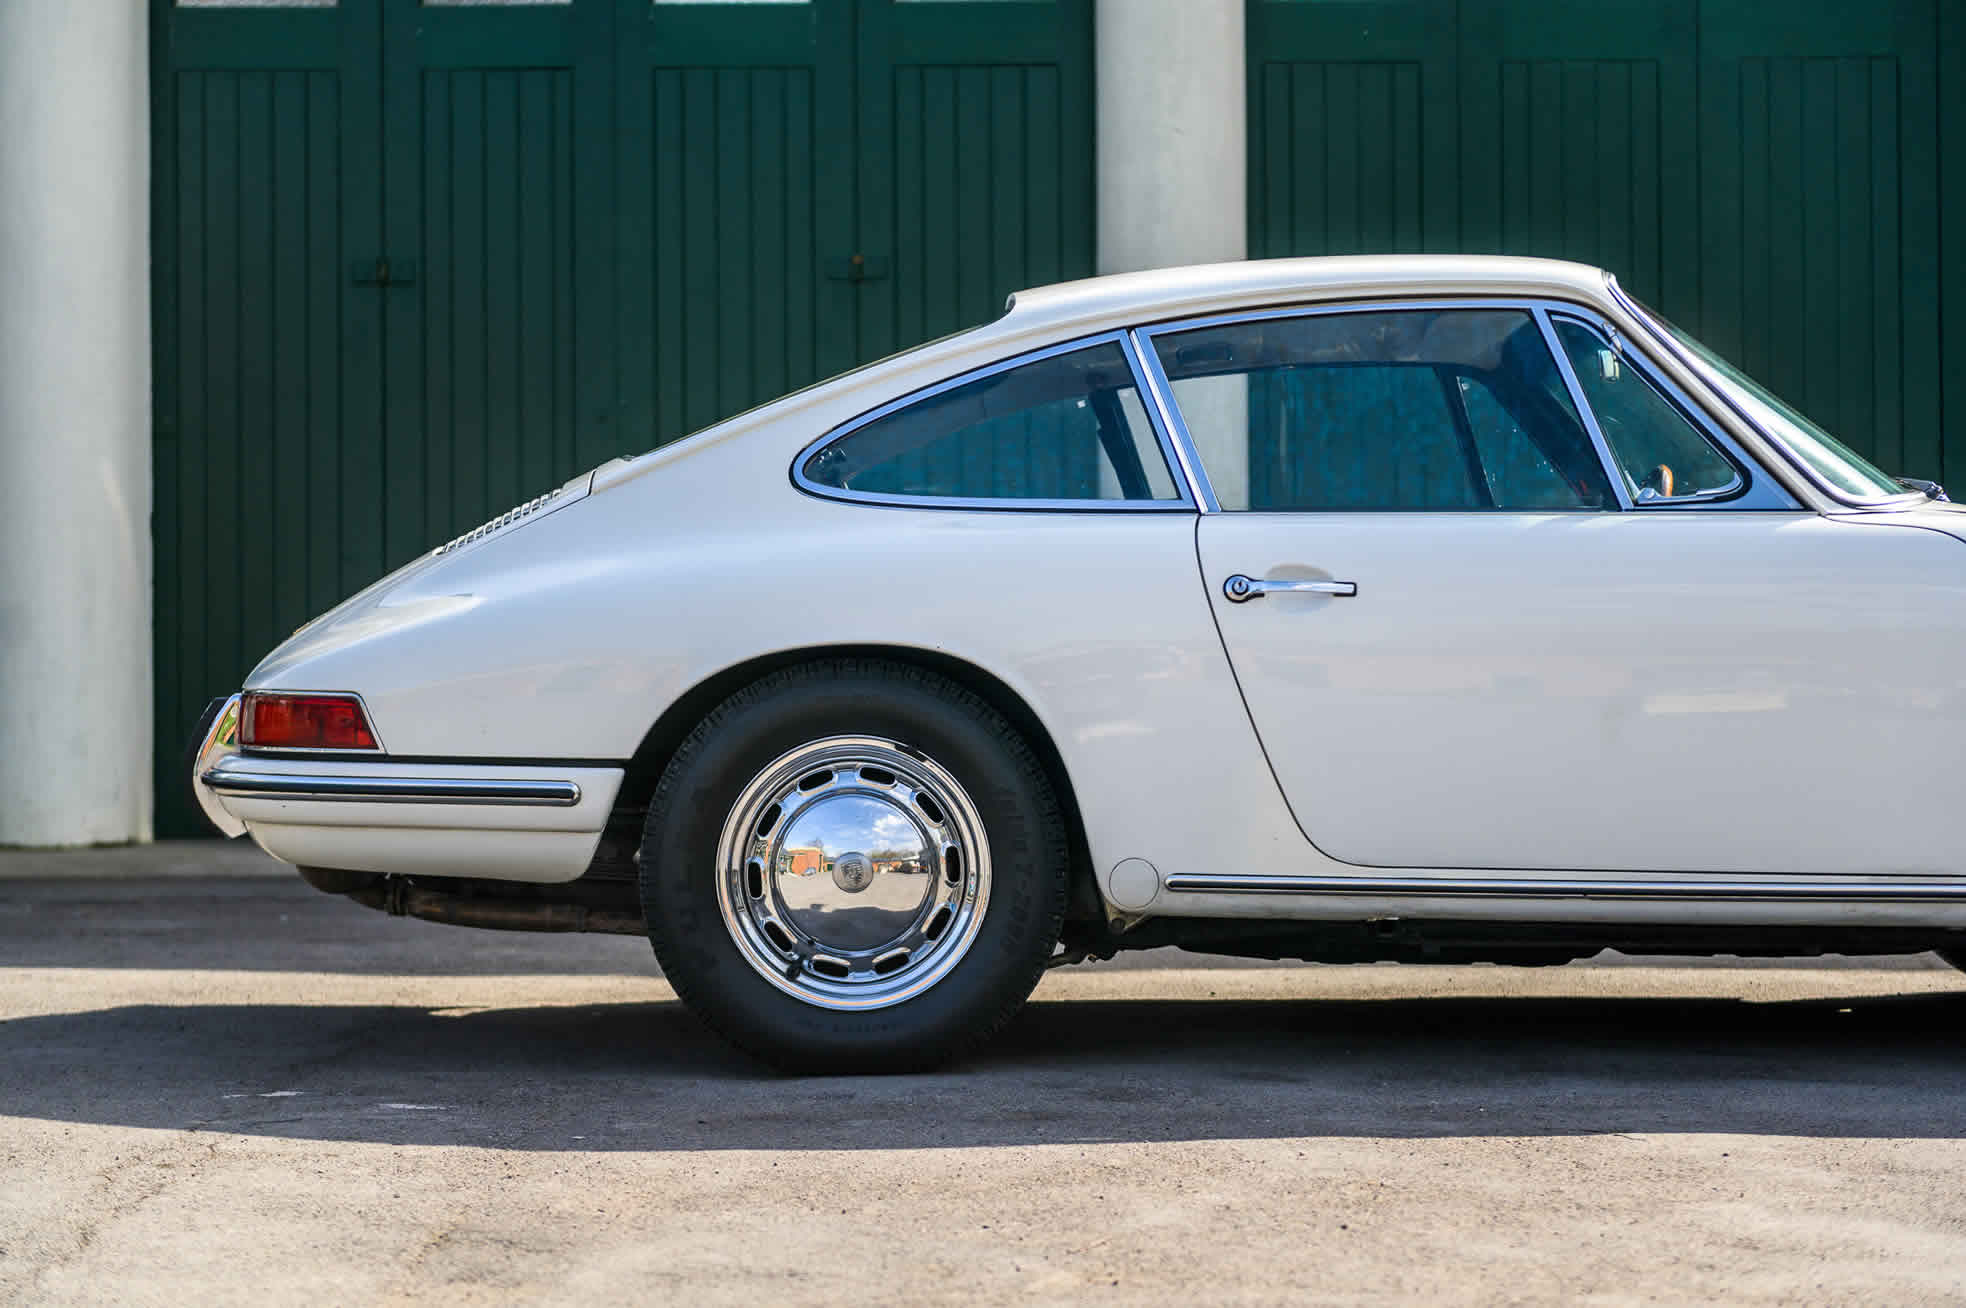 For Sale, 1965 Porsche 911, sports purpose, side view